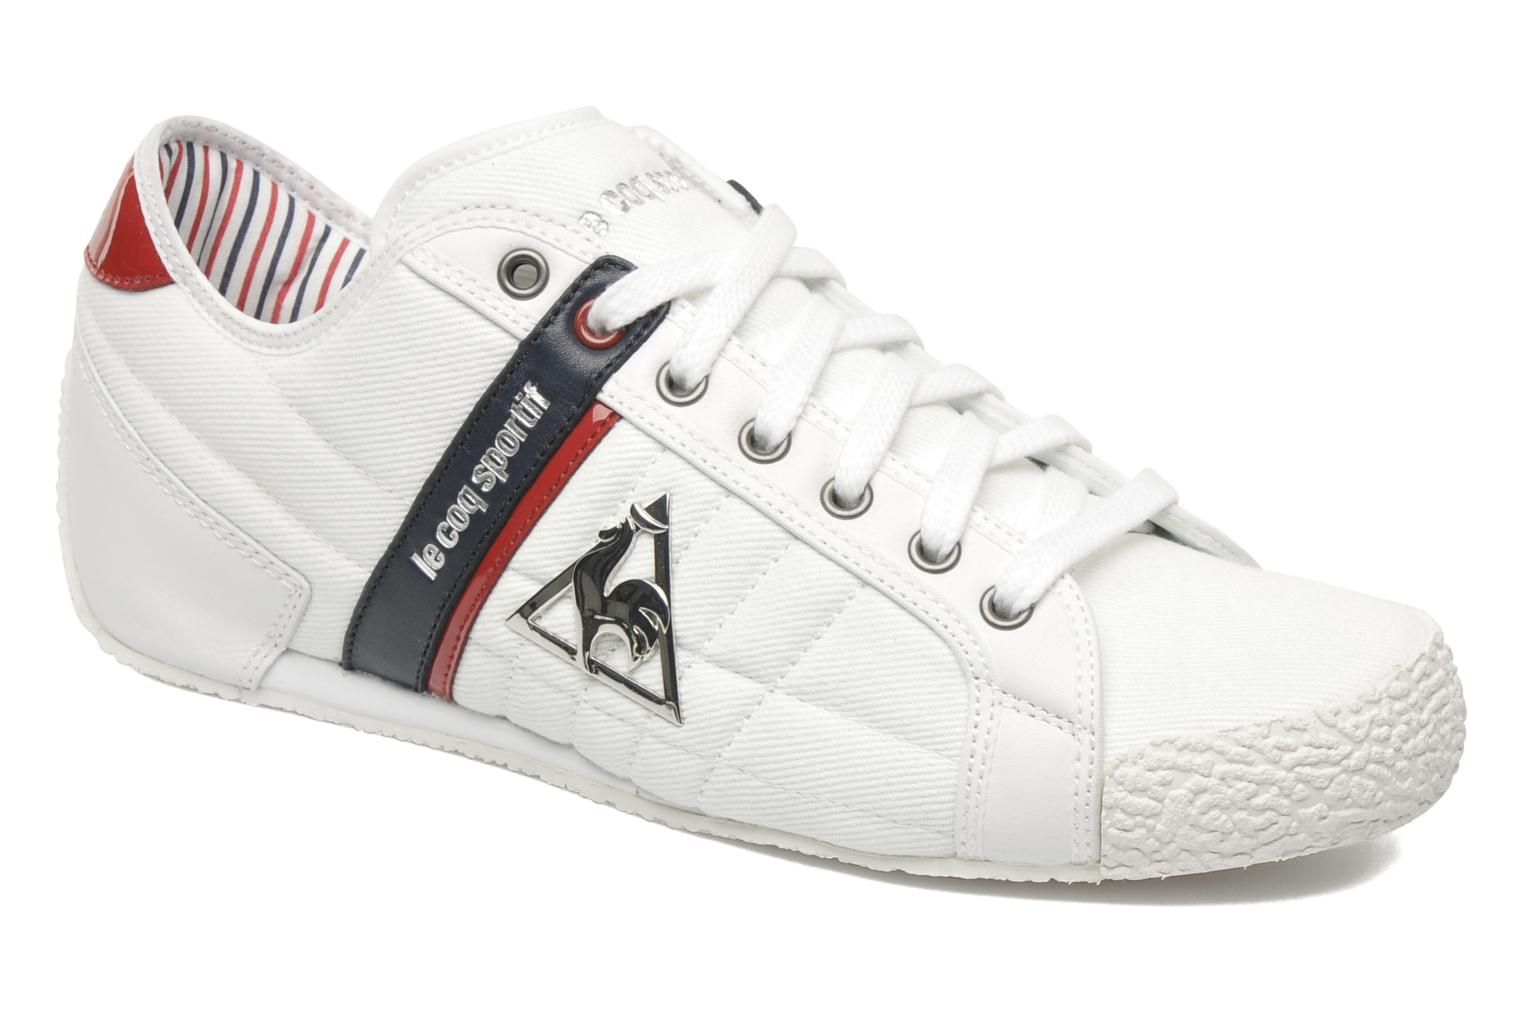 le coq sportif escrime denim trainers in white at 171887. Black Bedroom Furniture Sets. Home Design Ideas